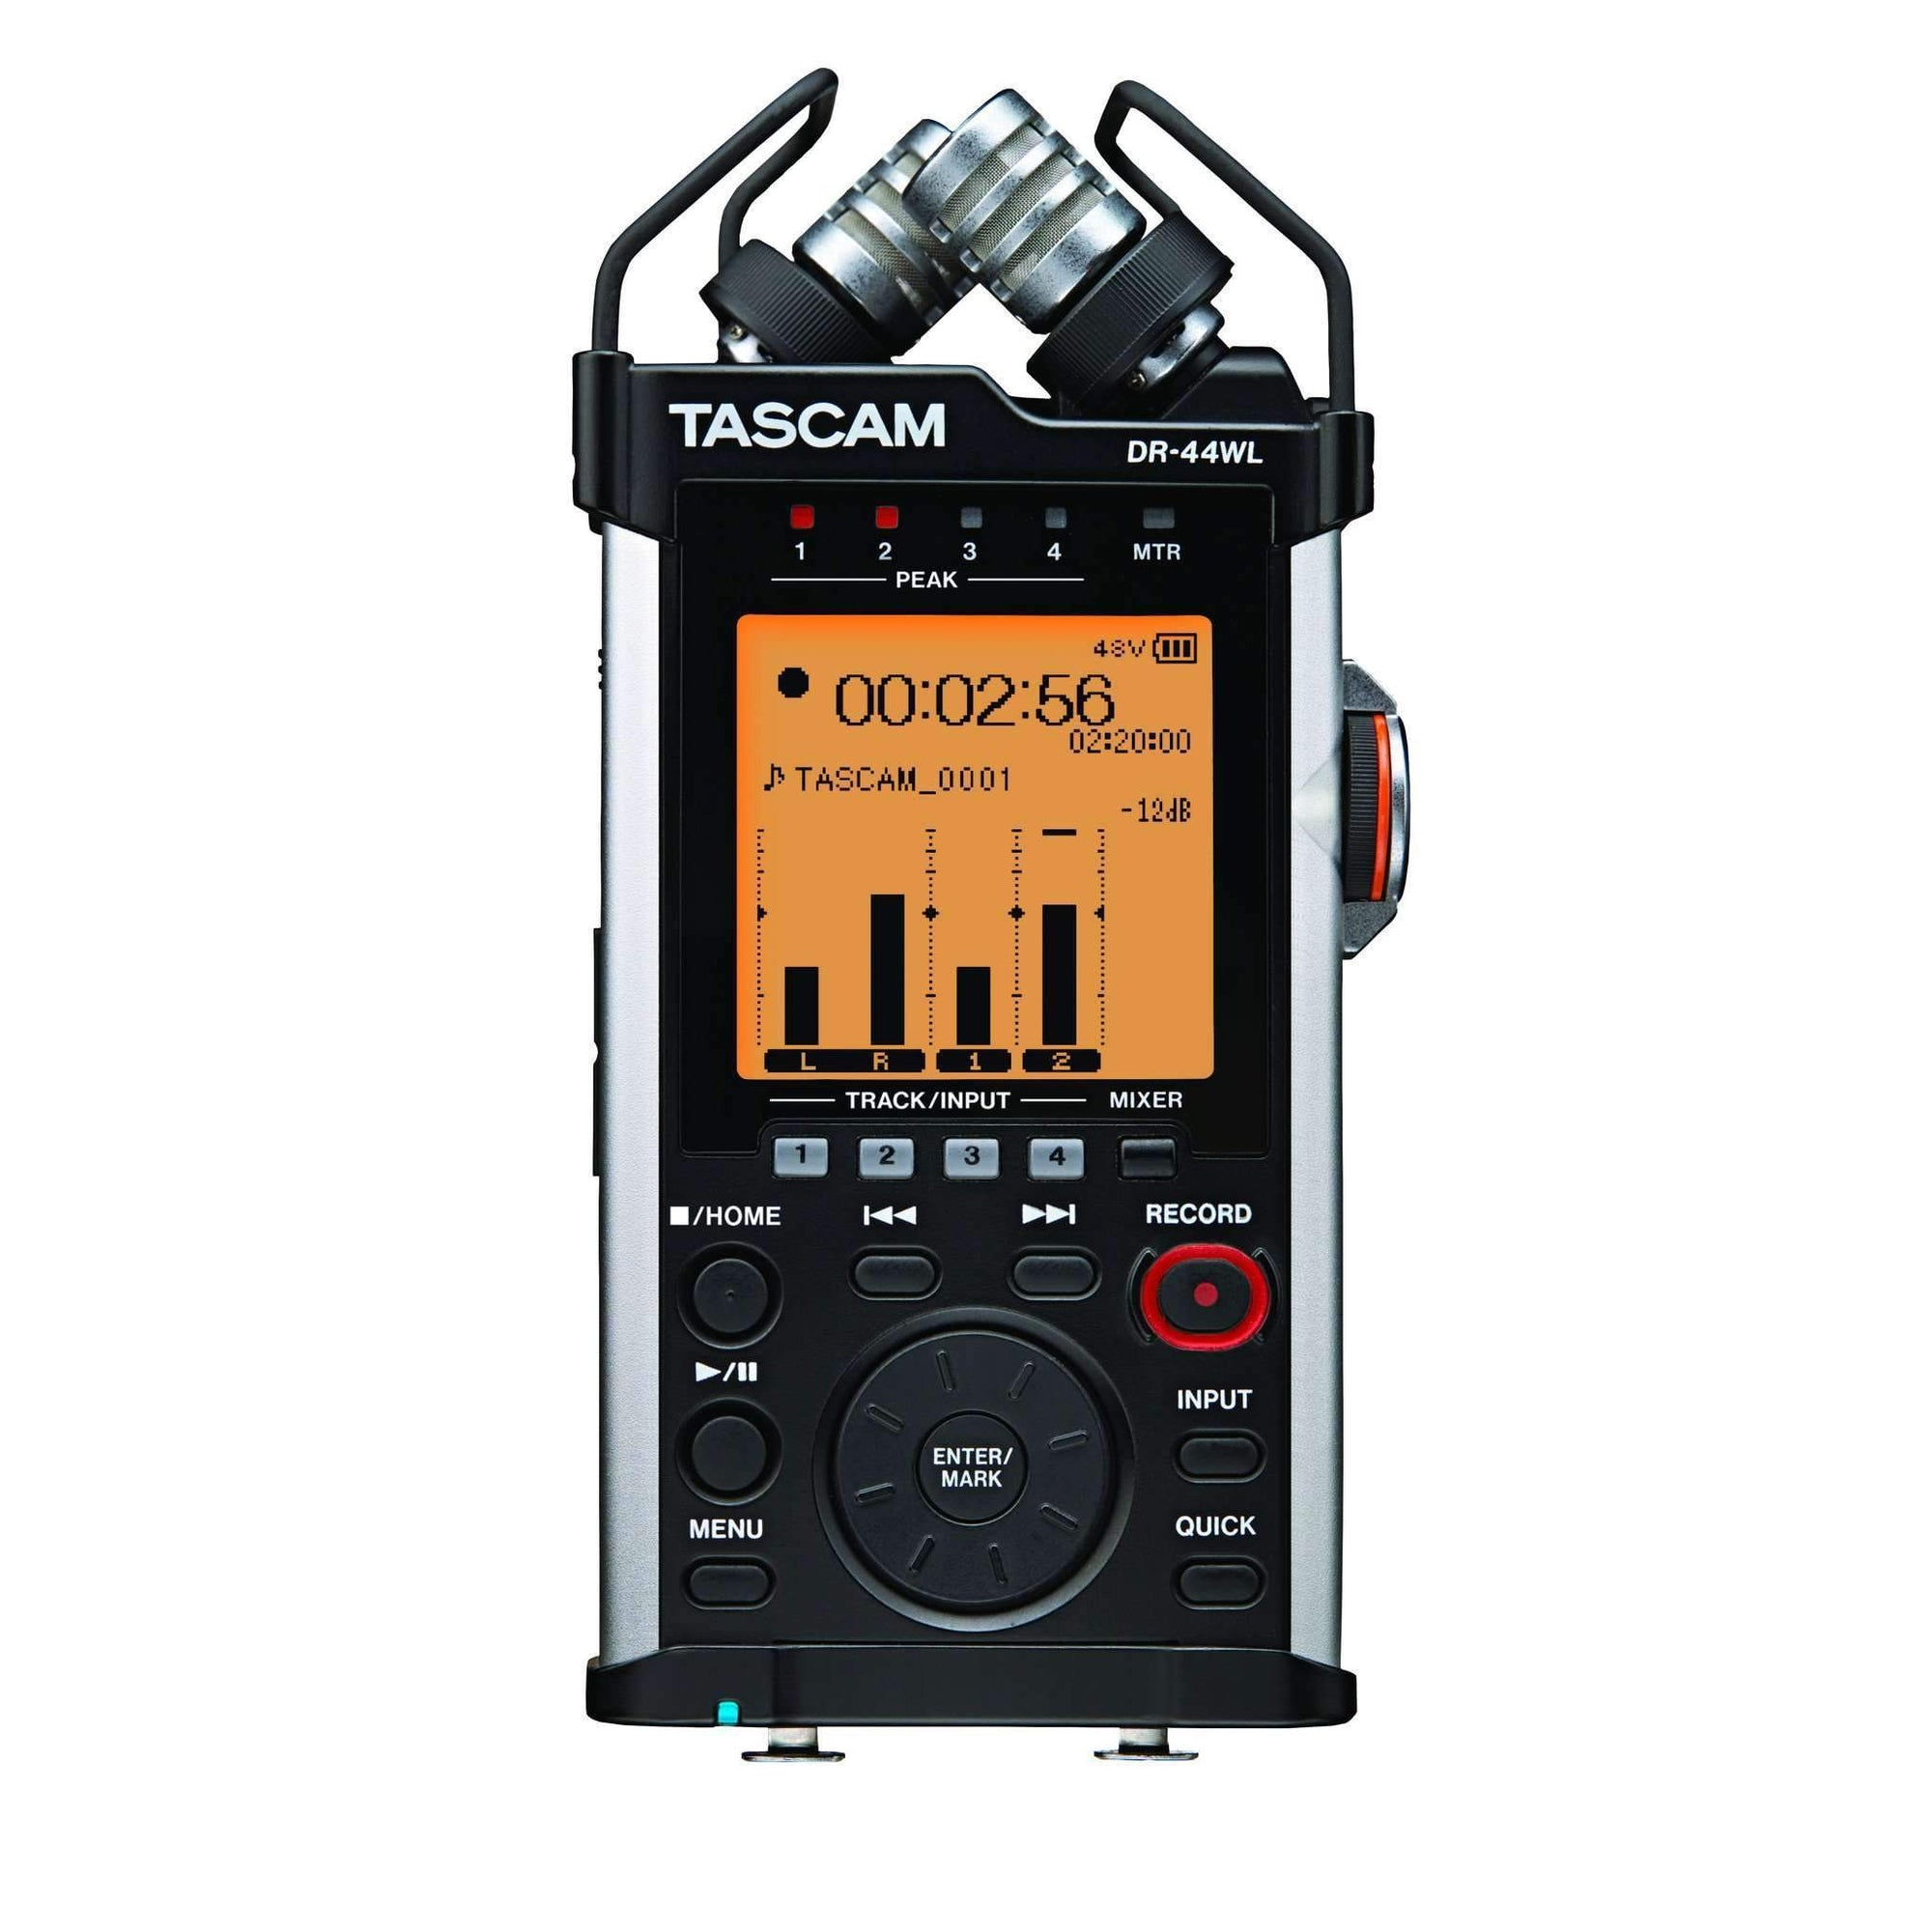 Industrie Music,Tascam DR-44WL Portable Digital Recorder